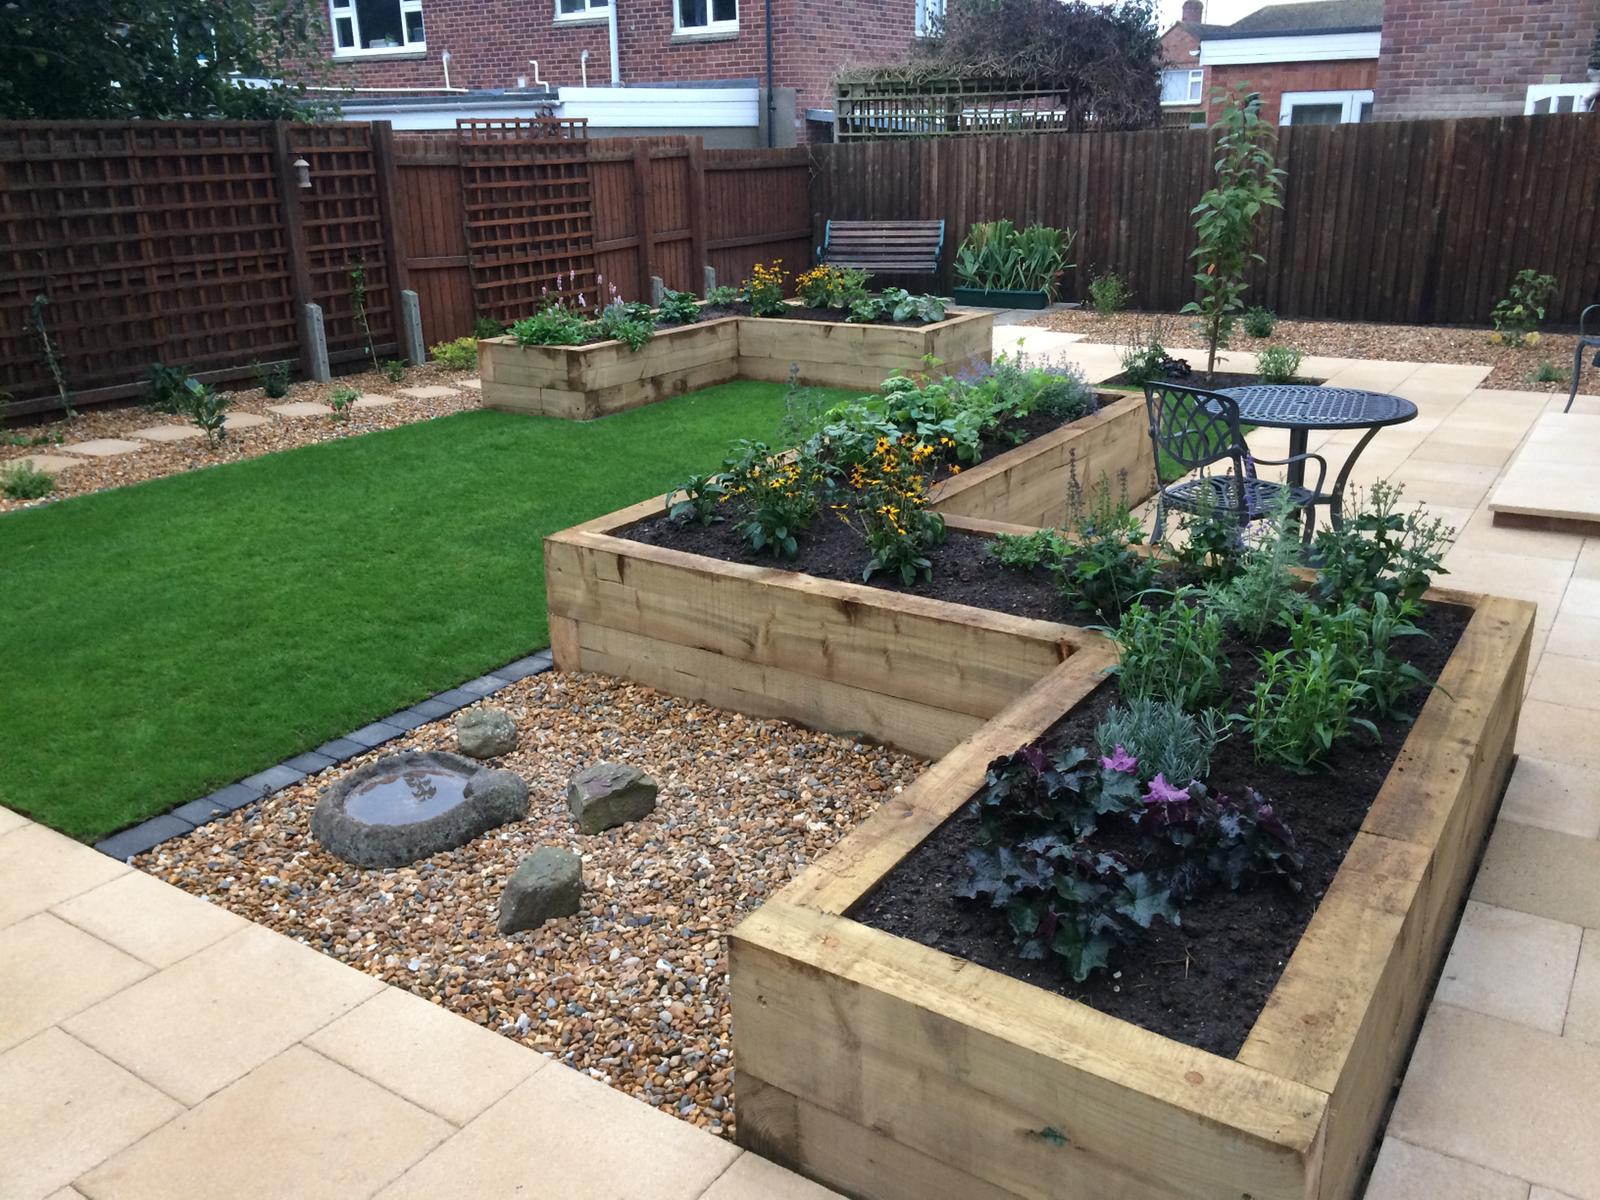 Creative landscaping with raised borders - Landscaping with summer house and pond - Period front garden - Grey slabs with raised beds - Landscaping large garden - Landscapes portfolio by Martyn Powell Landscapes in Cheltenham